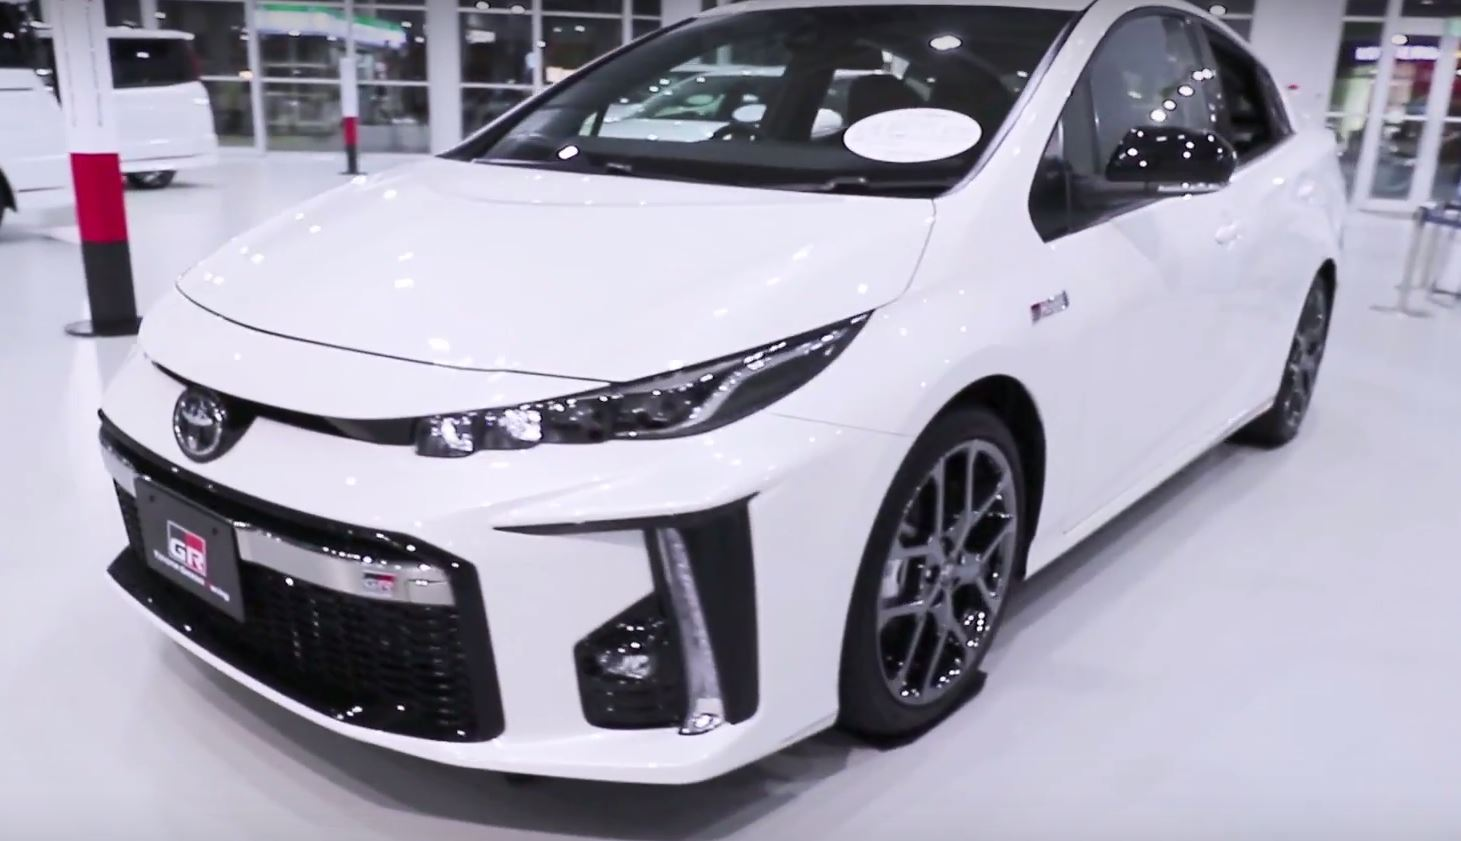 Toyota Prius Phv Prime Looks Awesome With Gr Sport Body Kit